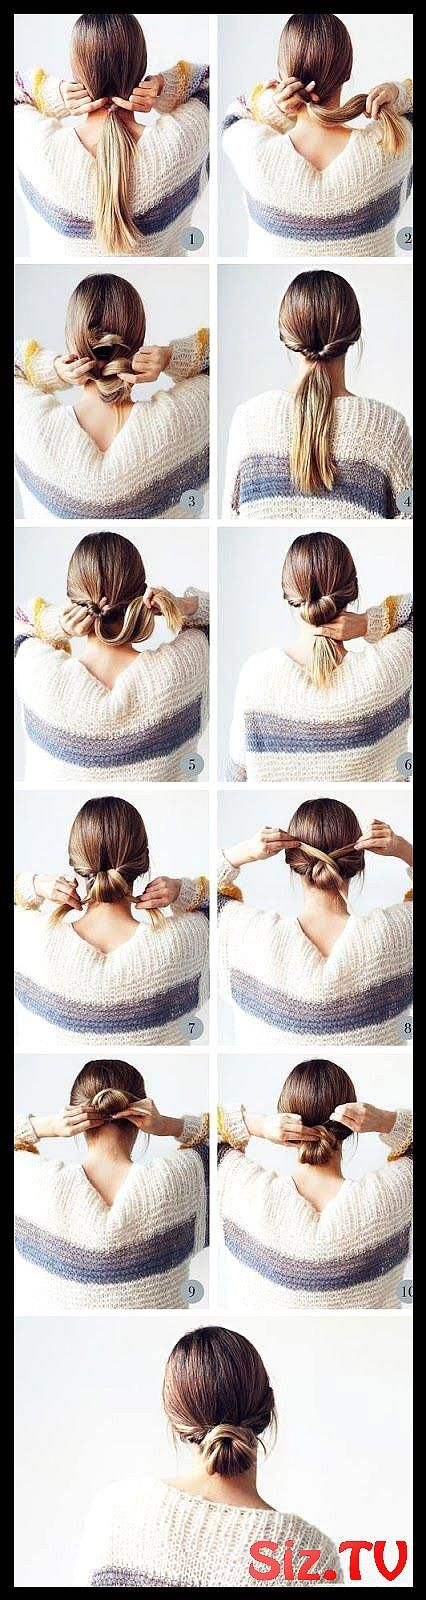 62 Easy Hairstyles Step By Step Diy 62 Easy Hairstyles Step By Step Diy Are You Feeling Bored With Your Messy Bun Hairstyles Hair Tutorials Easy Bun Hairstyles